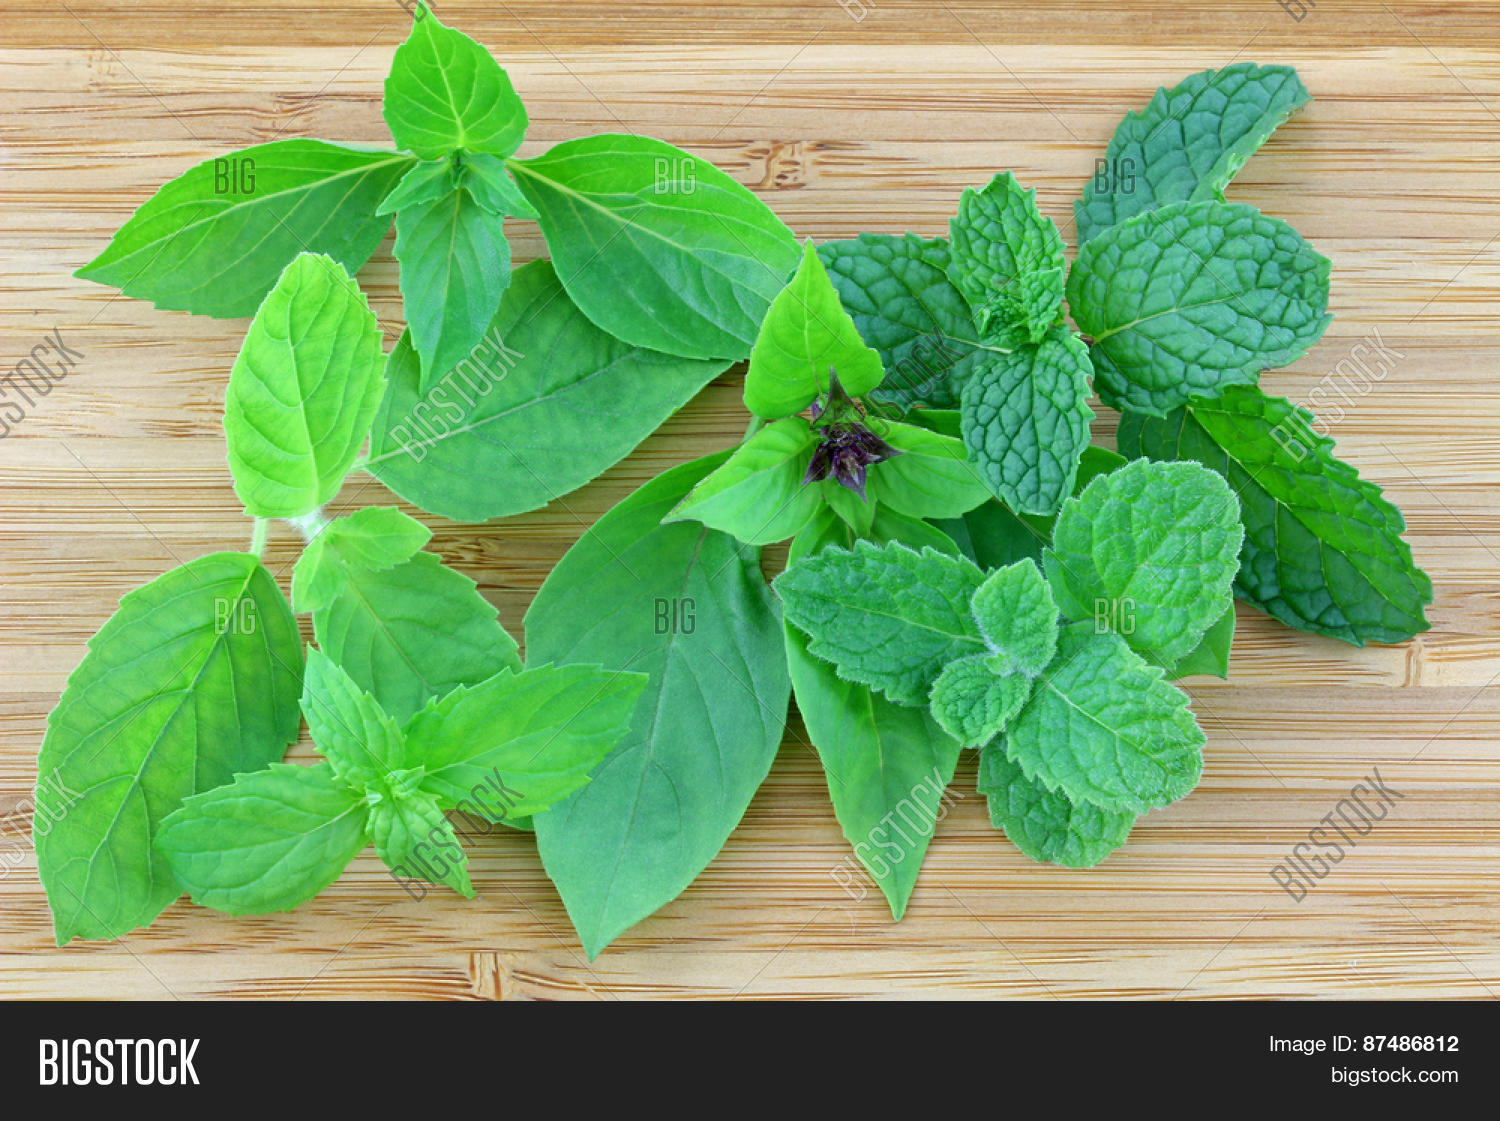 different types basil mint leaves image & photo | bigstock